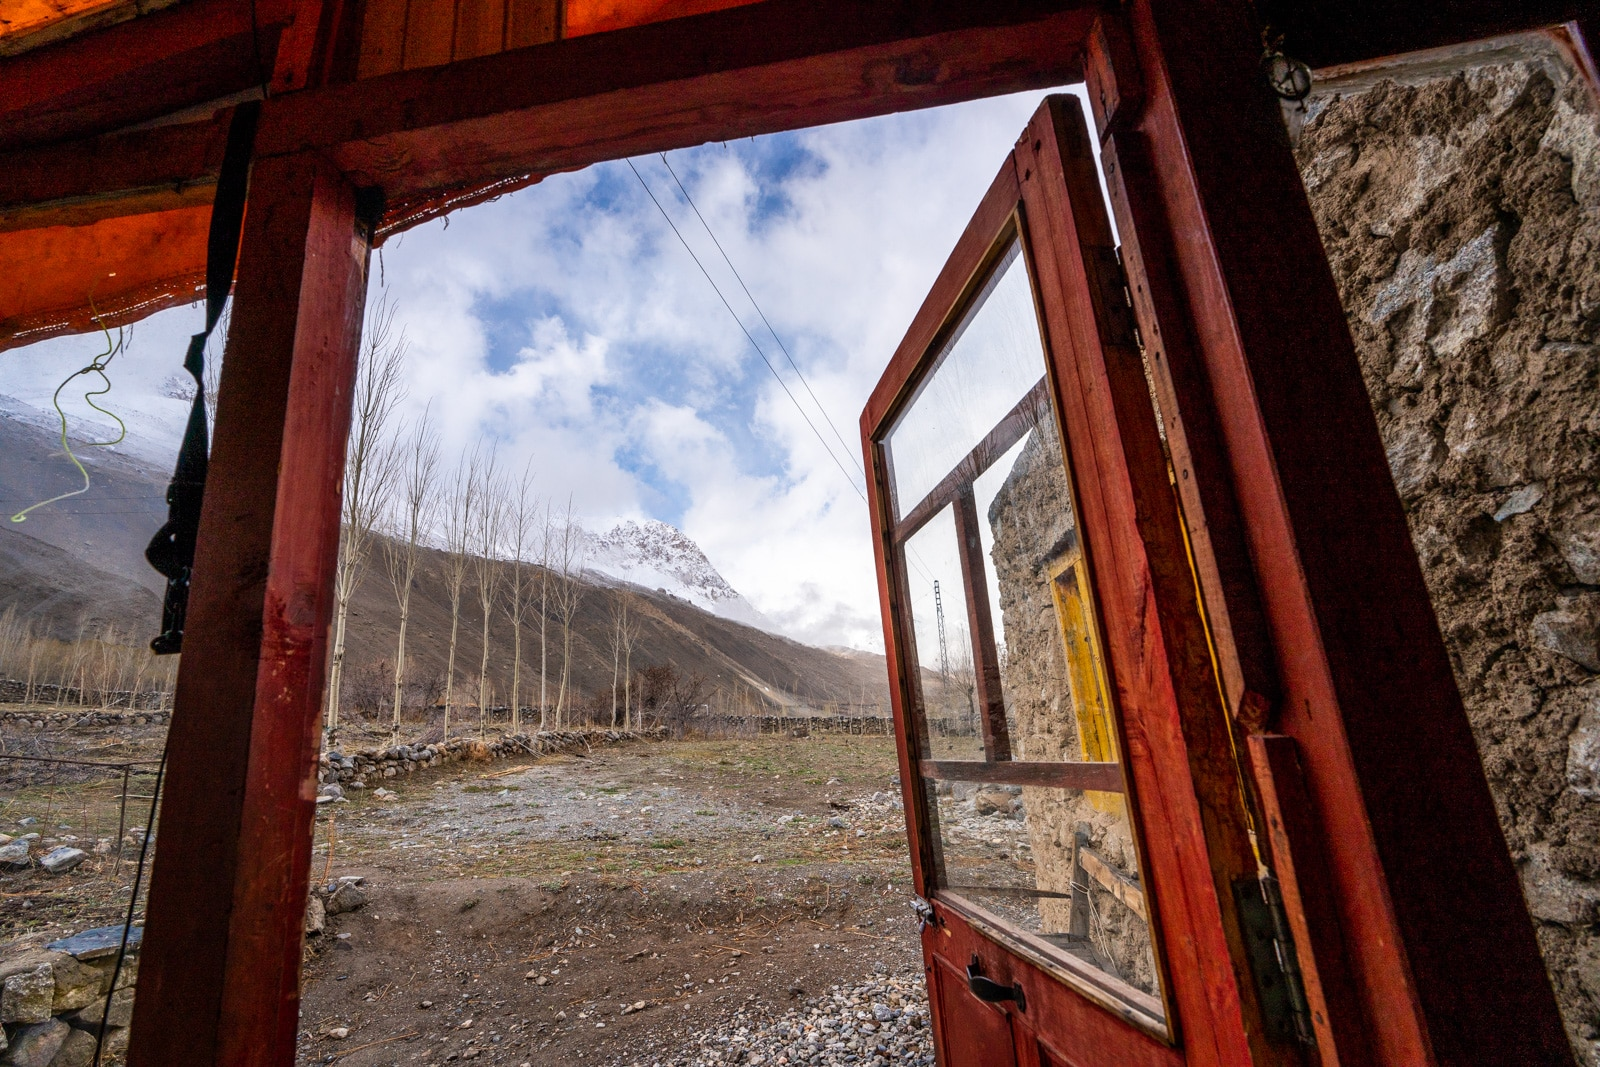 View from Pamir Serai guesthouse in Chapursan Valley